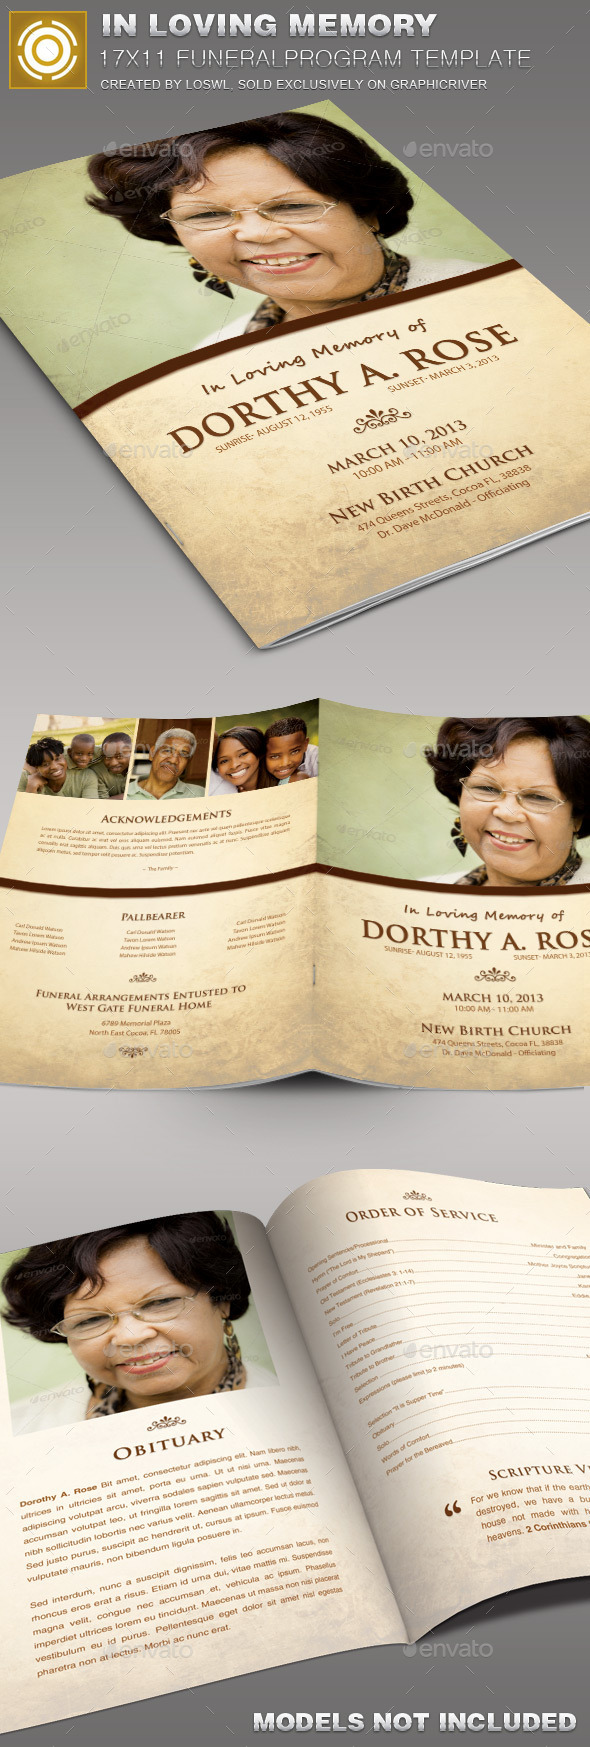 In Loving Memory Funeral Program Template 005 - Informational Brochures